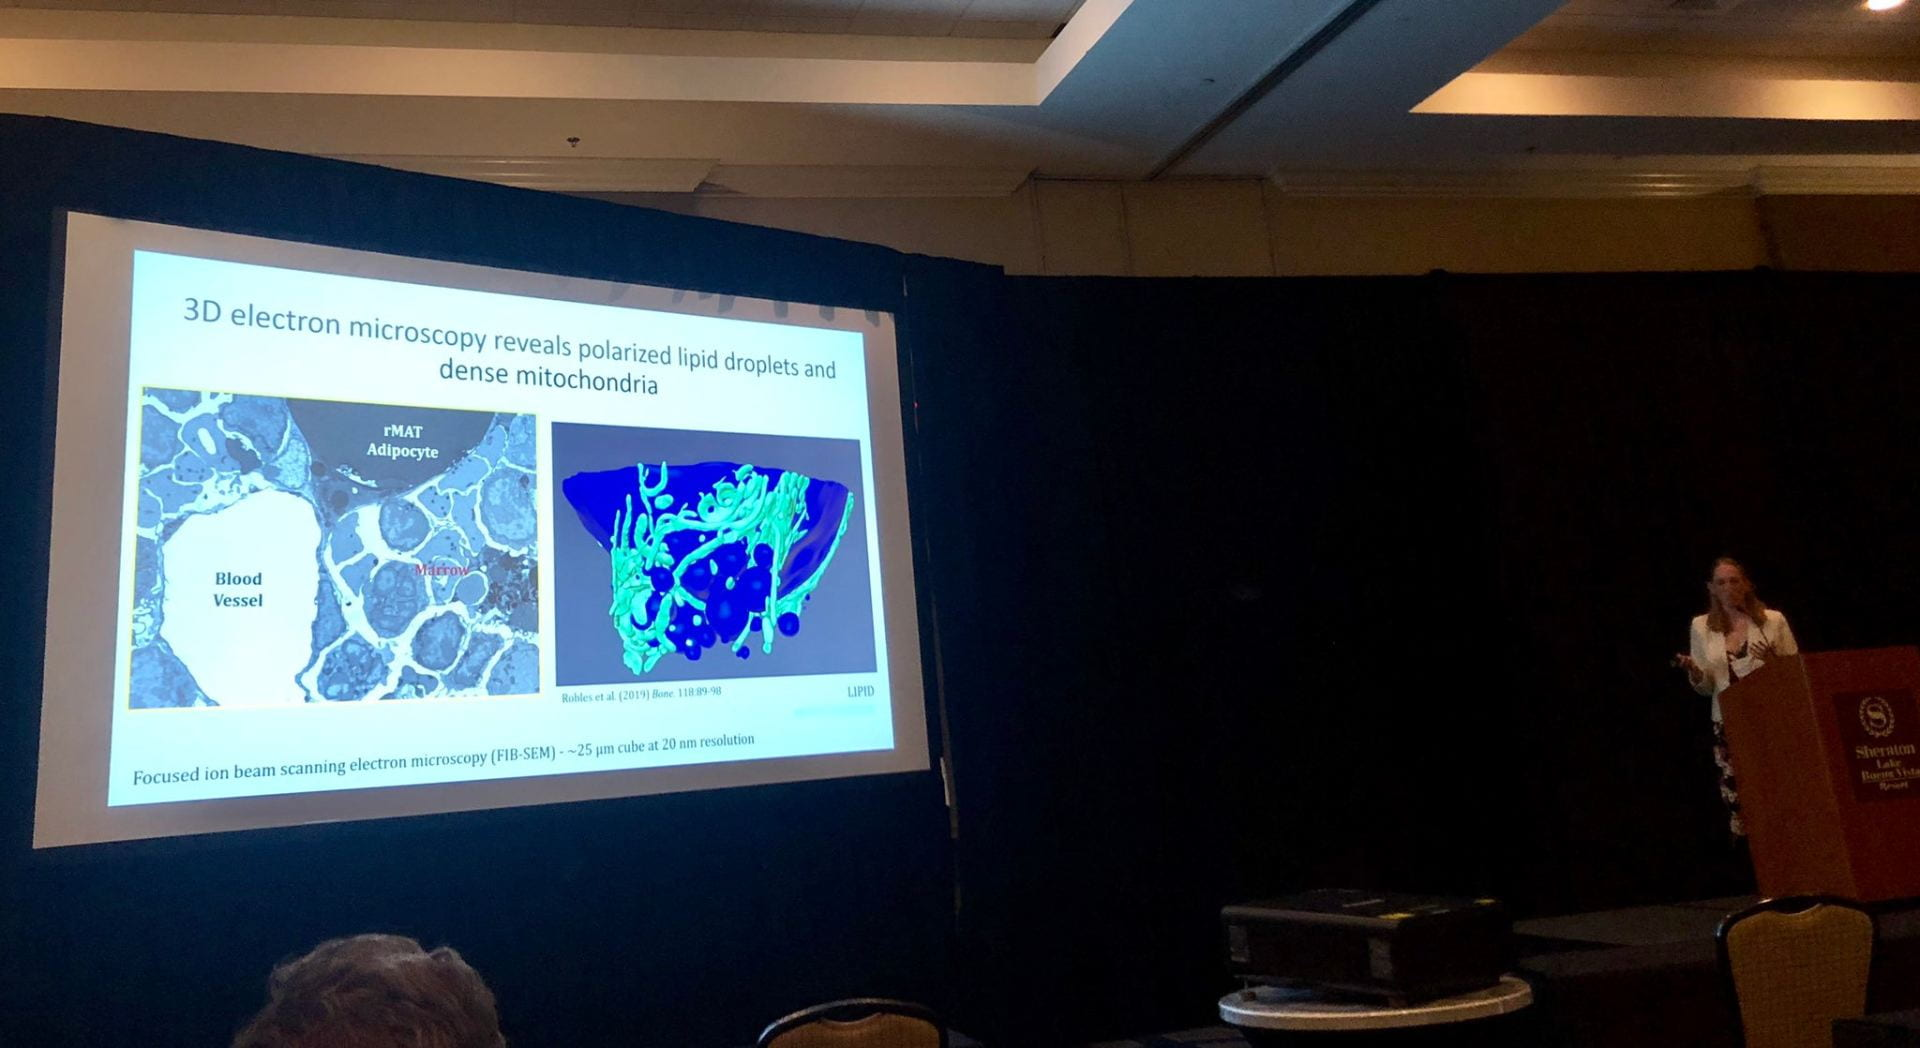 Dr. Scheller discusses nerves, bone, and adiposity at ISBM2019